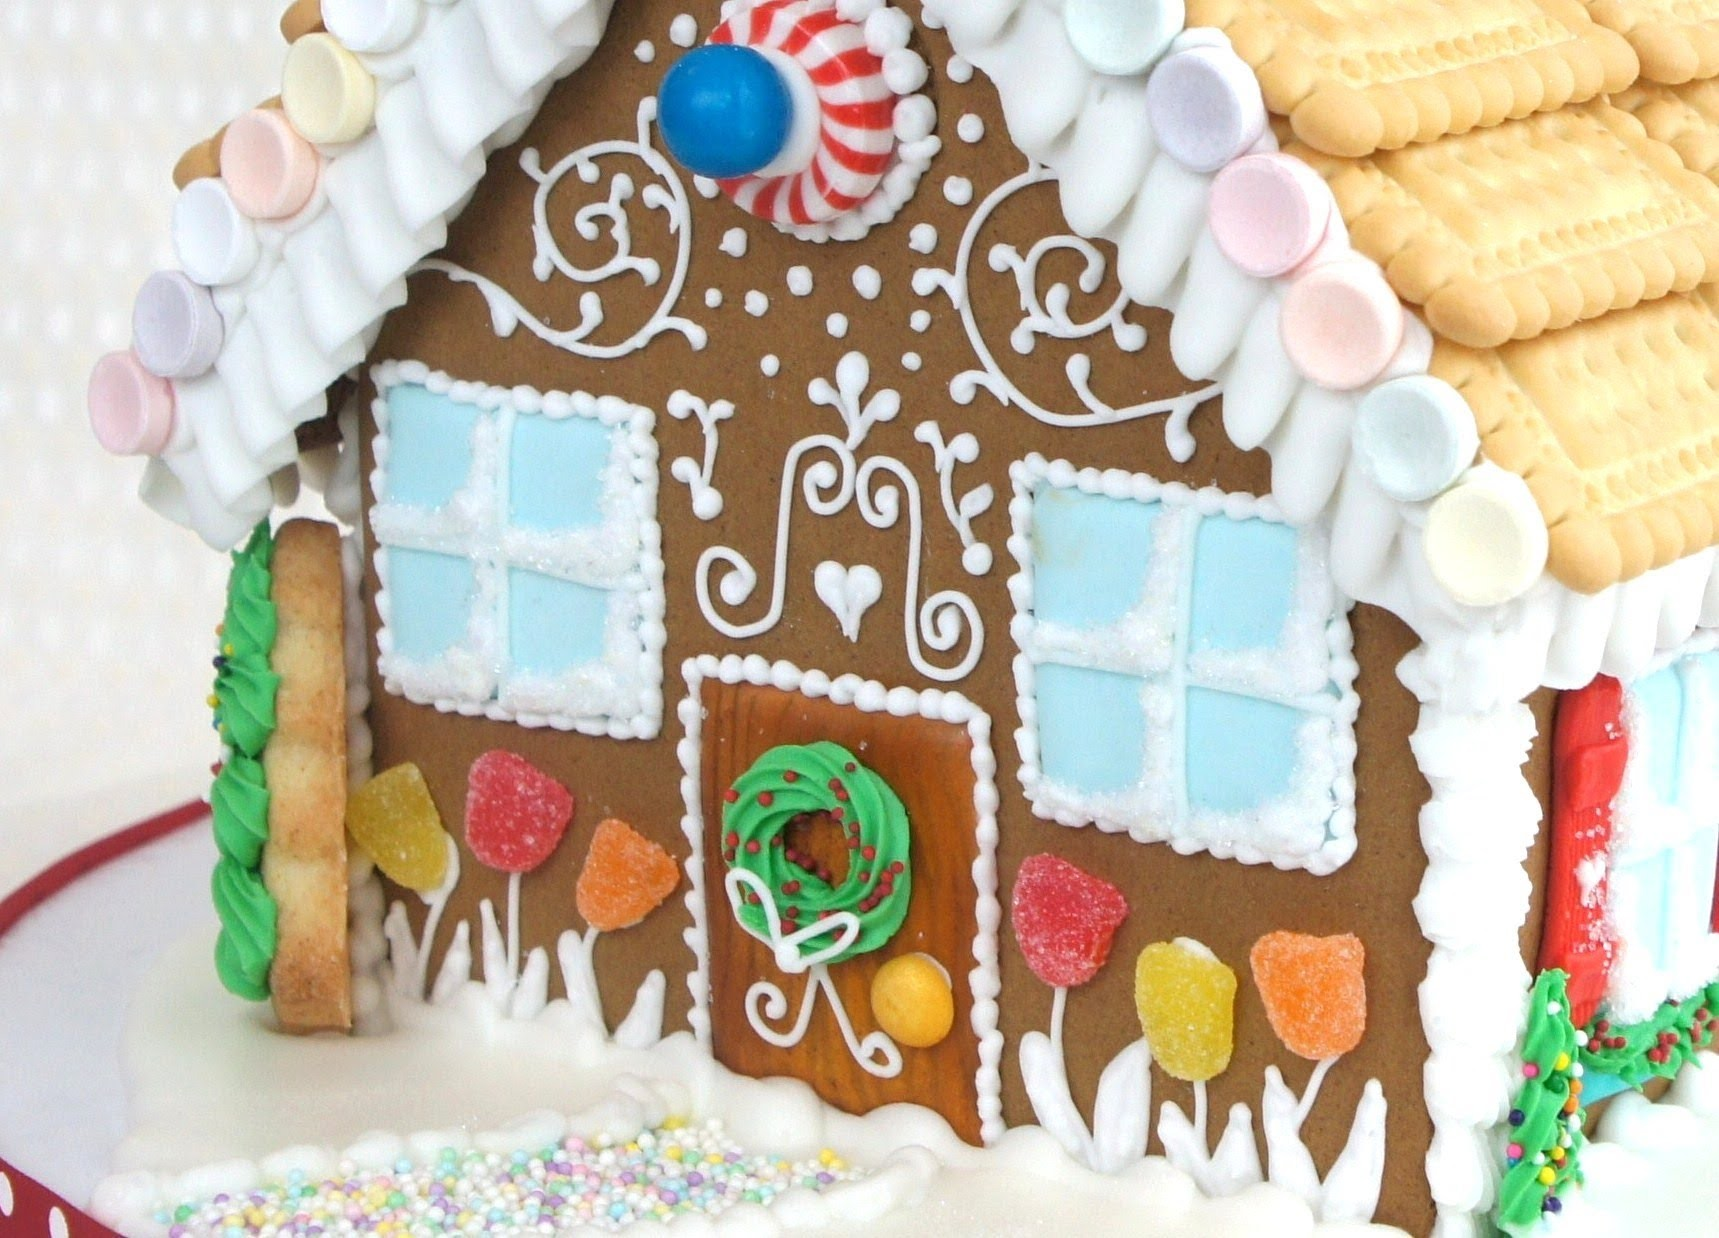 How to decorate a gingerbread house with royal icing - how to make a ginger bread house